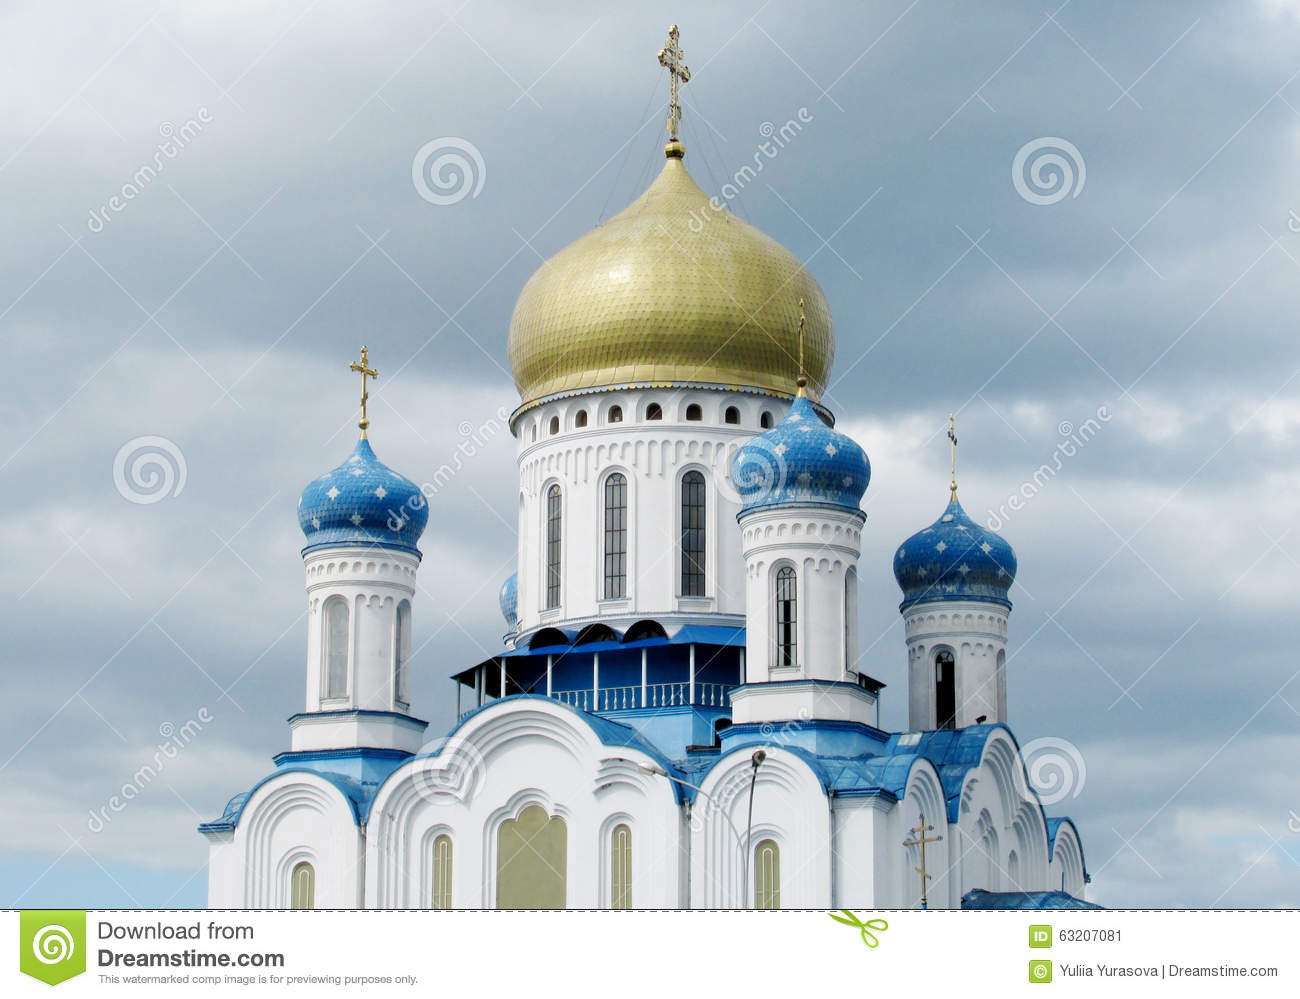 Orthodox Cathedral of the Holy Cross in Uzhorod